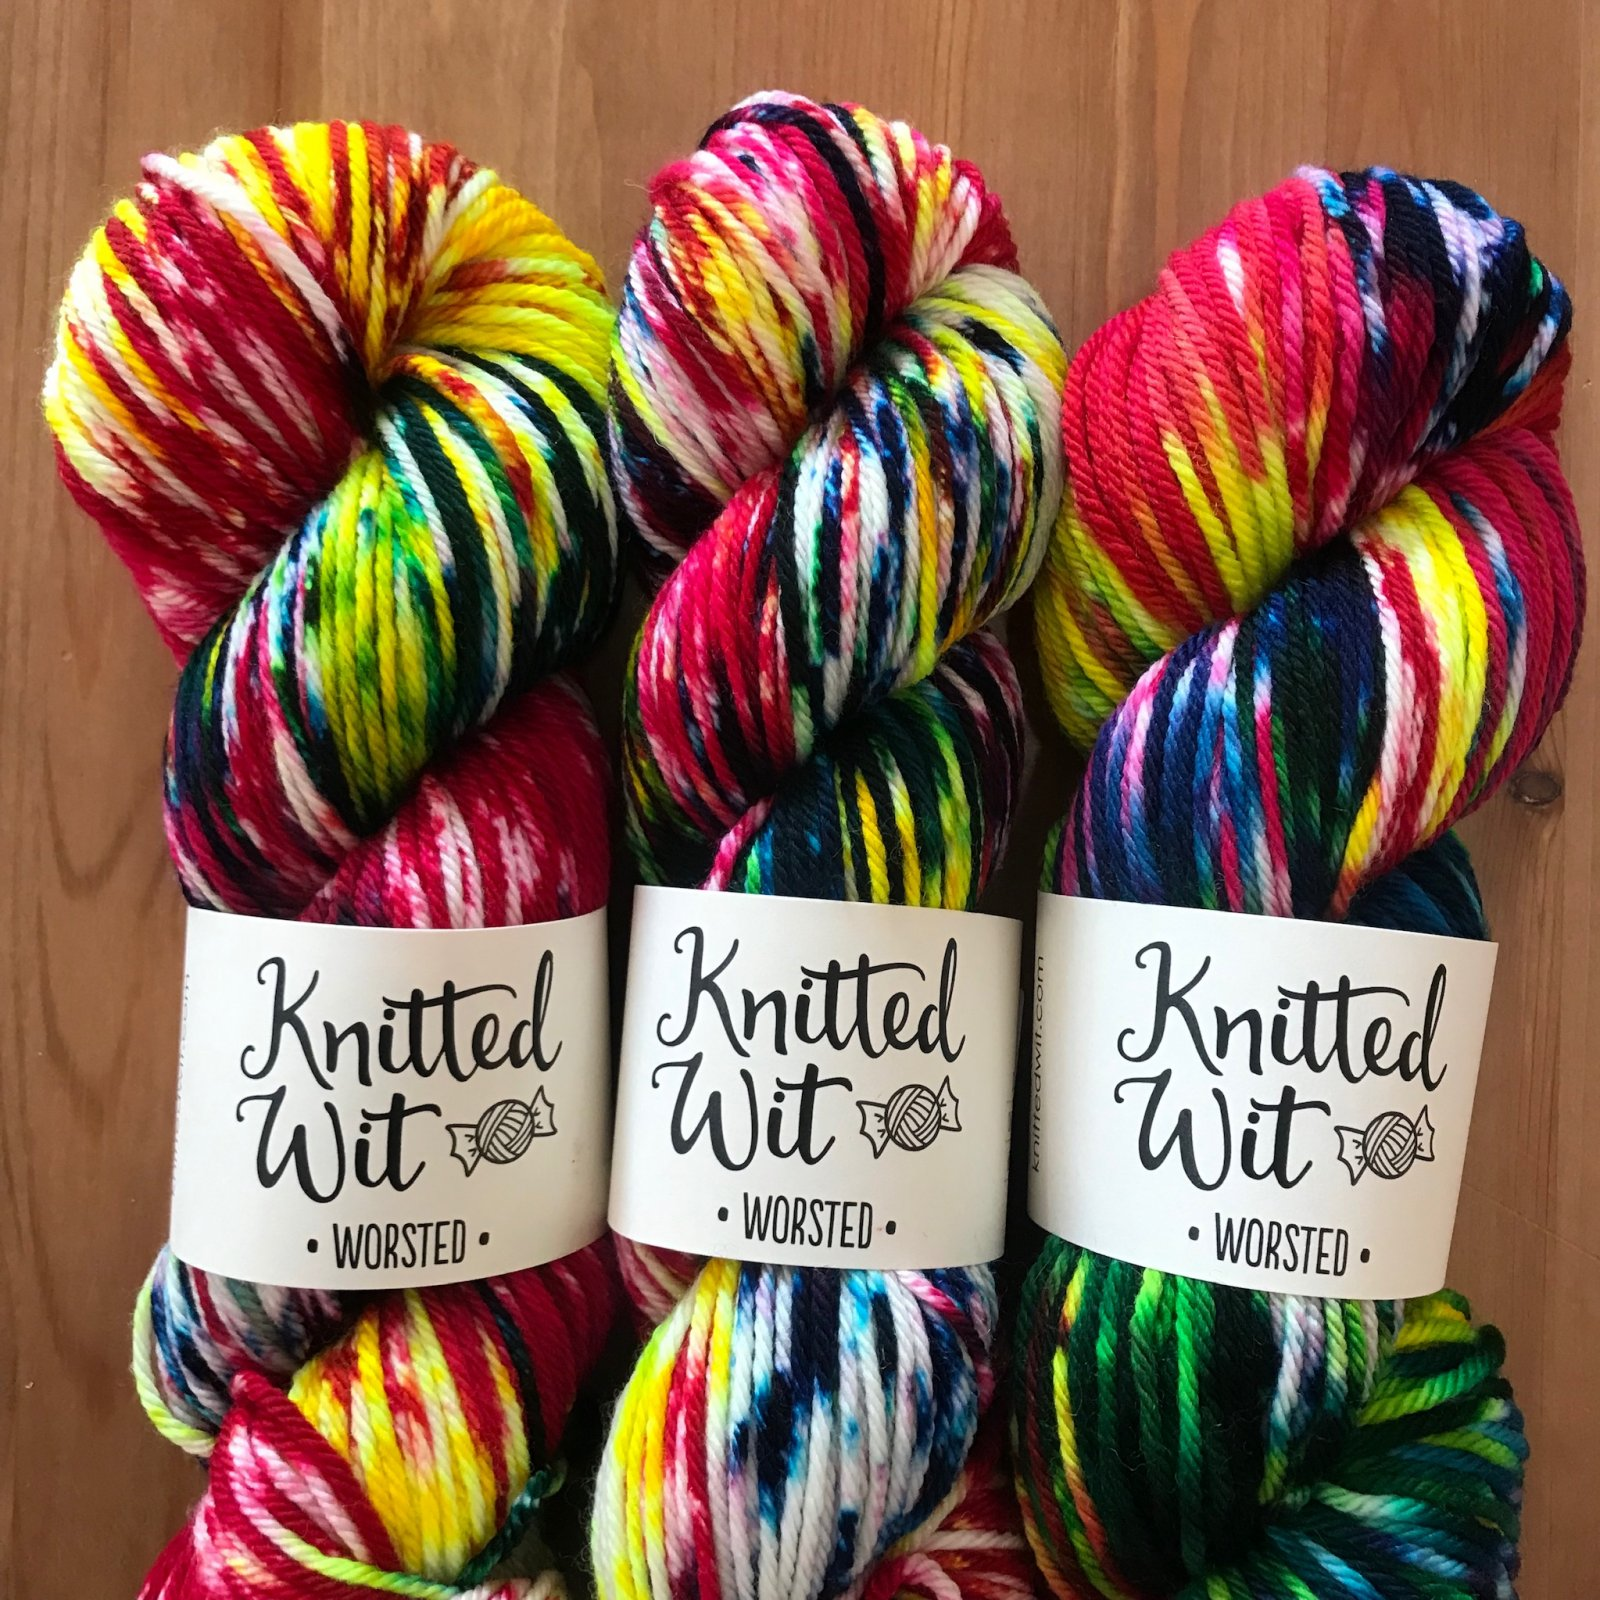 KW Worsted in Melted Crayon